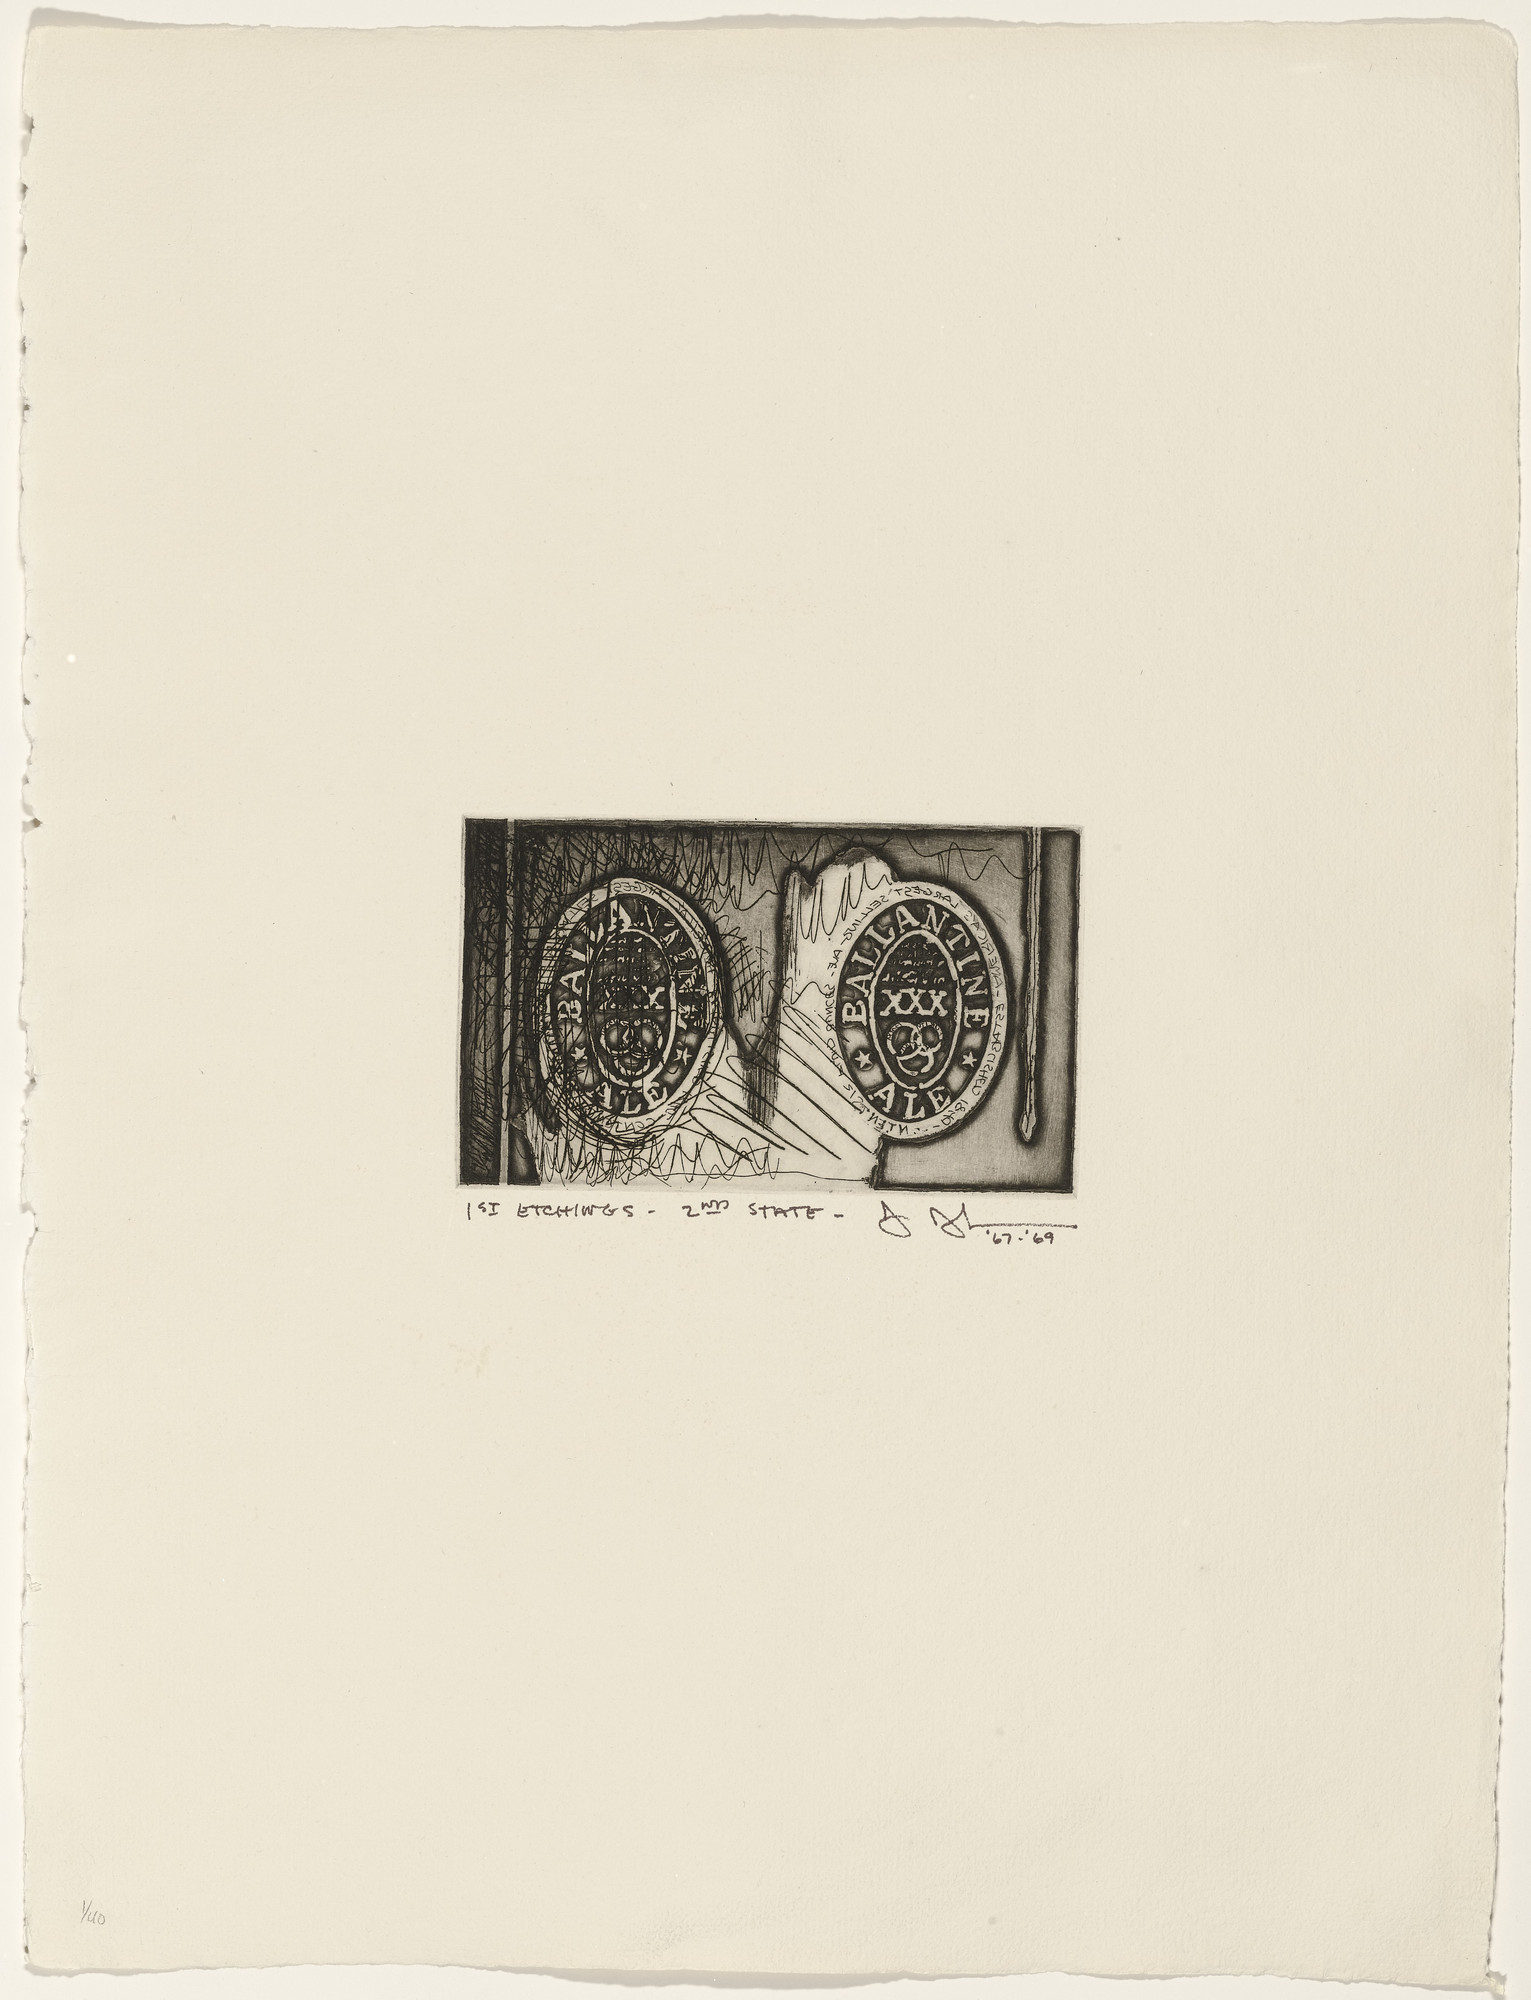 Jasper Johns. Ale Cans from 1st Etchings-2nd State. 1967–69, published 1969